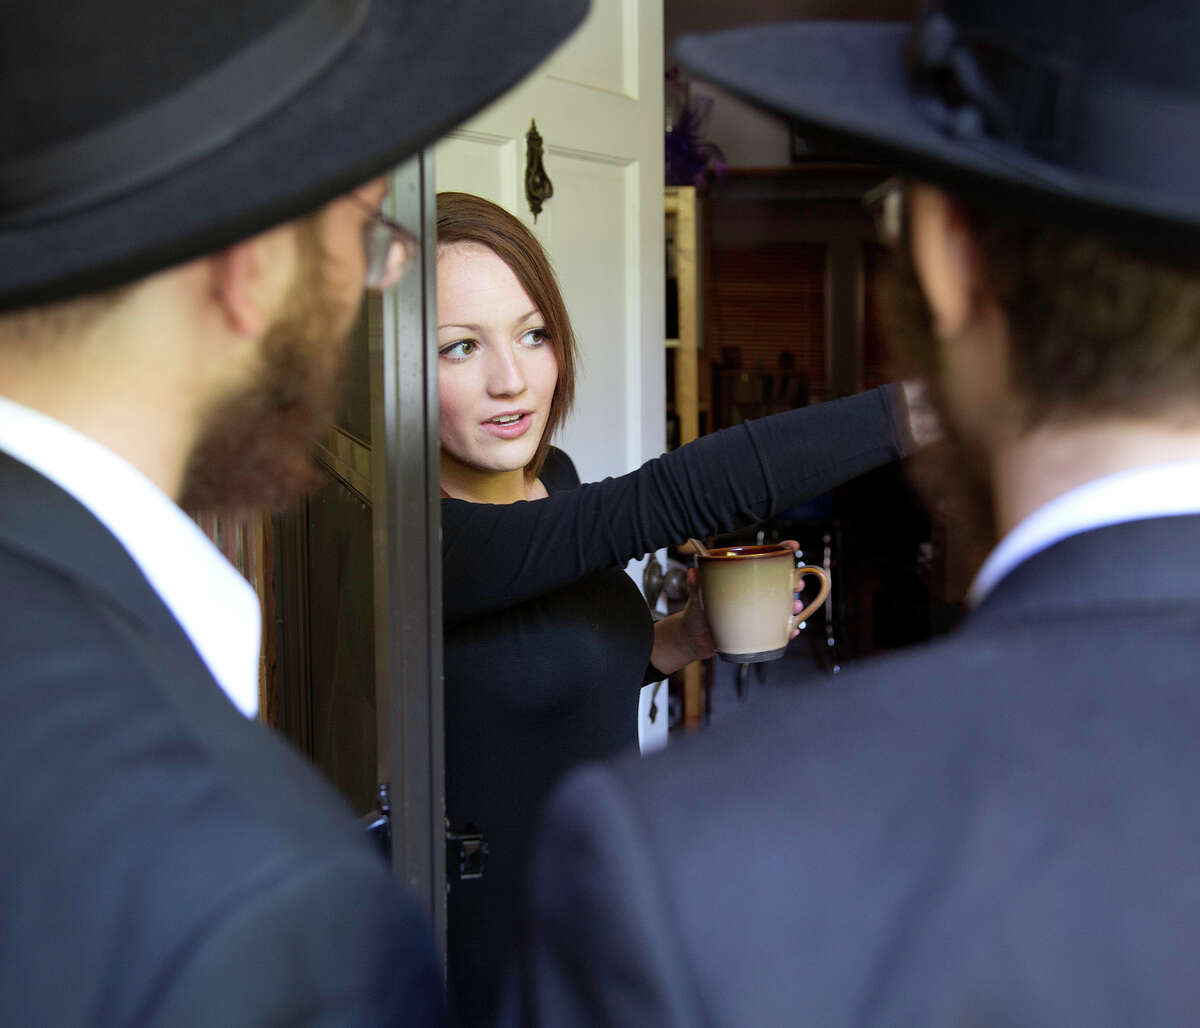 Isabelle Forman greets Kopel Silberberg, left, and Eli Block, right, as they visit the Forman home to inspect and replace the mezuzahs that traditionally hangs at the entrance of Jewish homes, Wednesday, August 8, 2012.